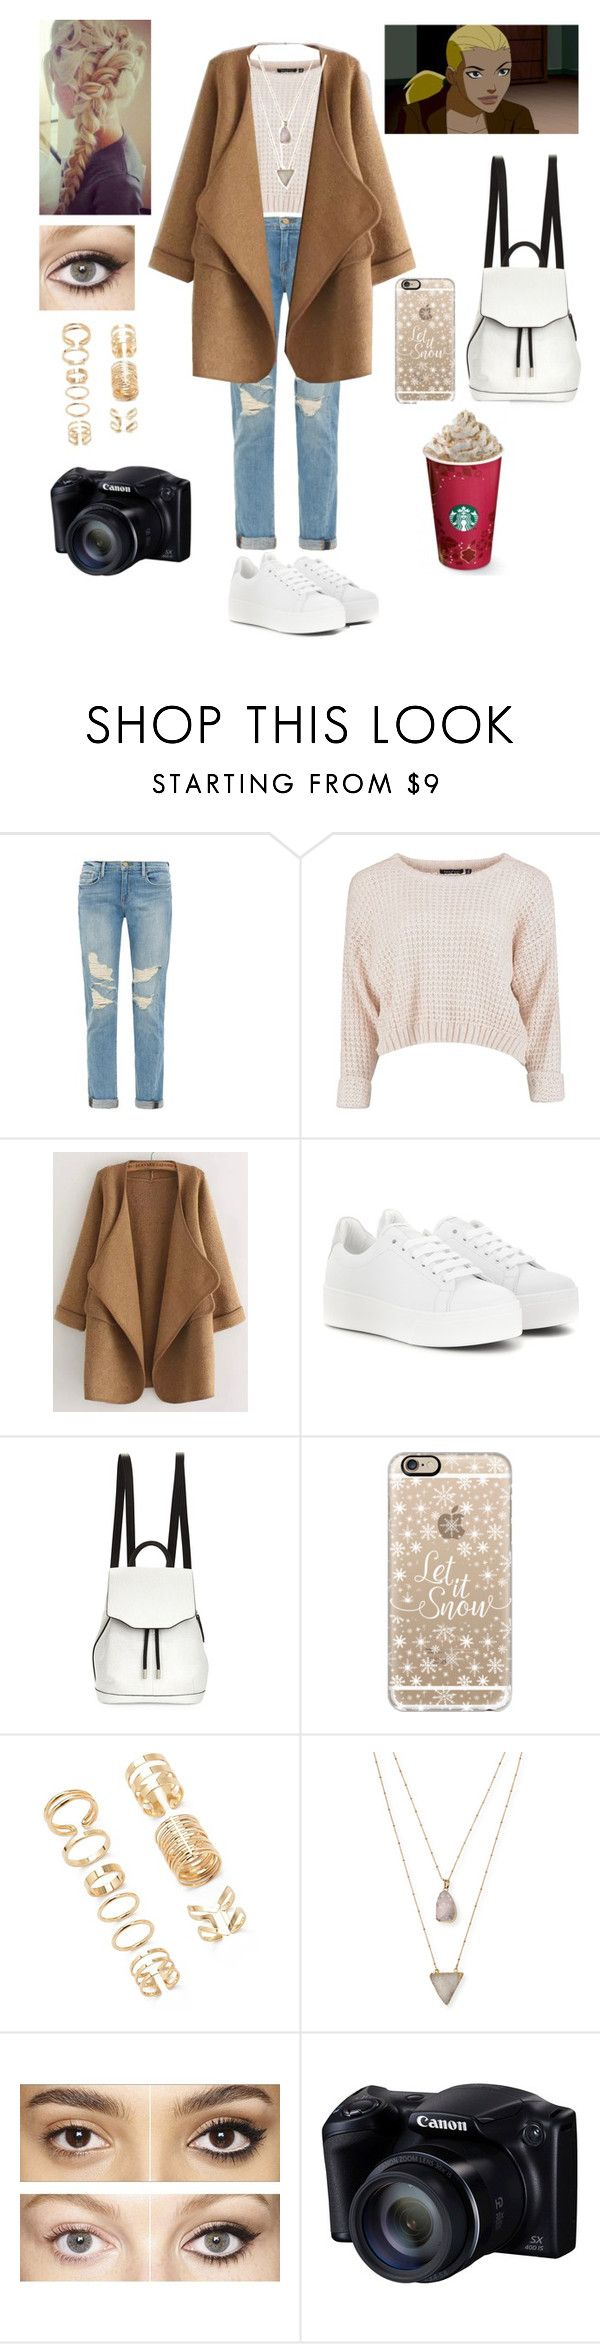 """""""Young Justice Artemis New Years"""" by silverdreamcatcher ❤ liked on Polyvore featuring Frame Denim, WithChic, Kenzo, rag & bone, Casetify, Forever 21, Panacea and Charlotte Tilbury"""